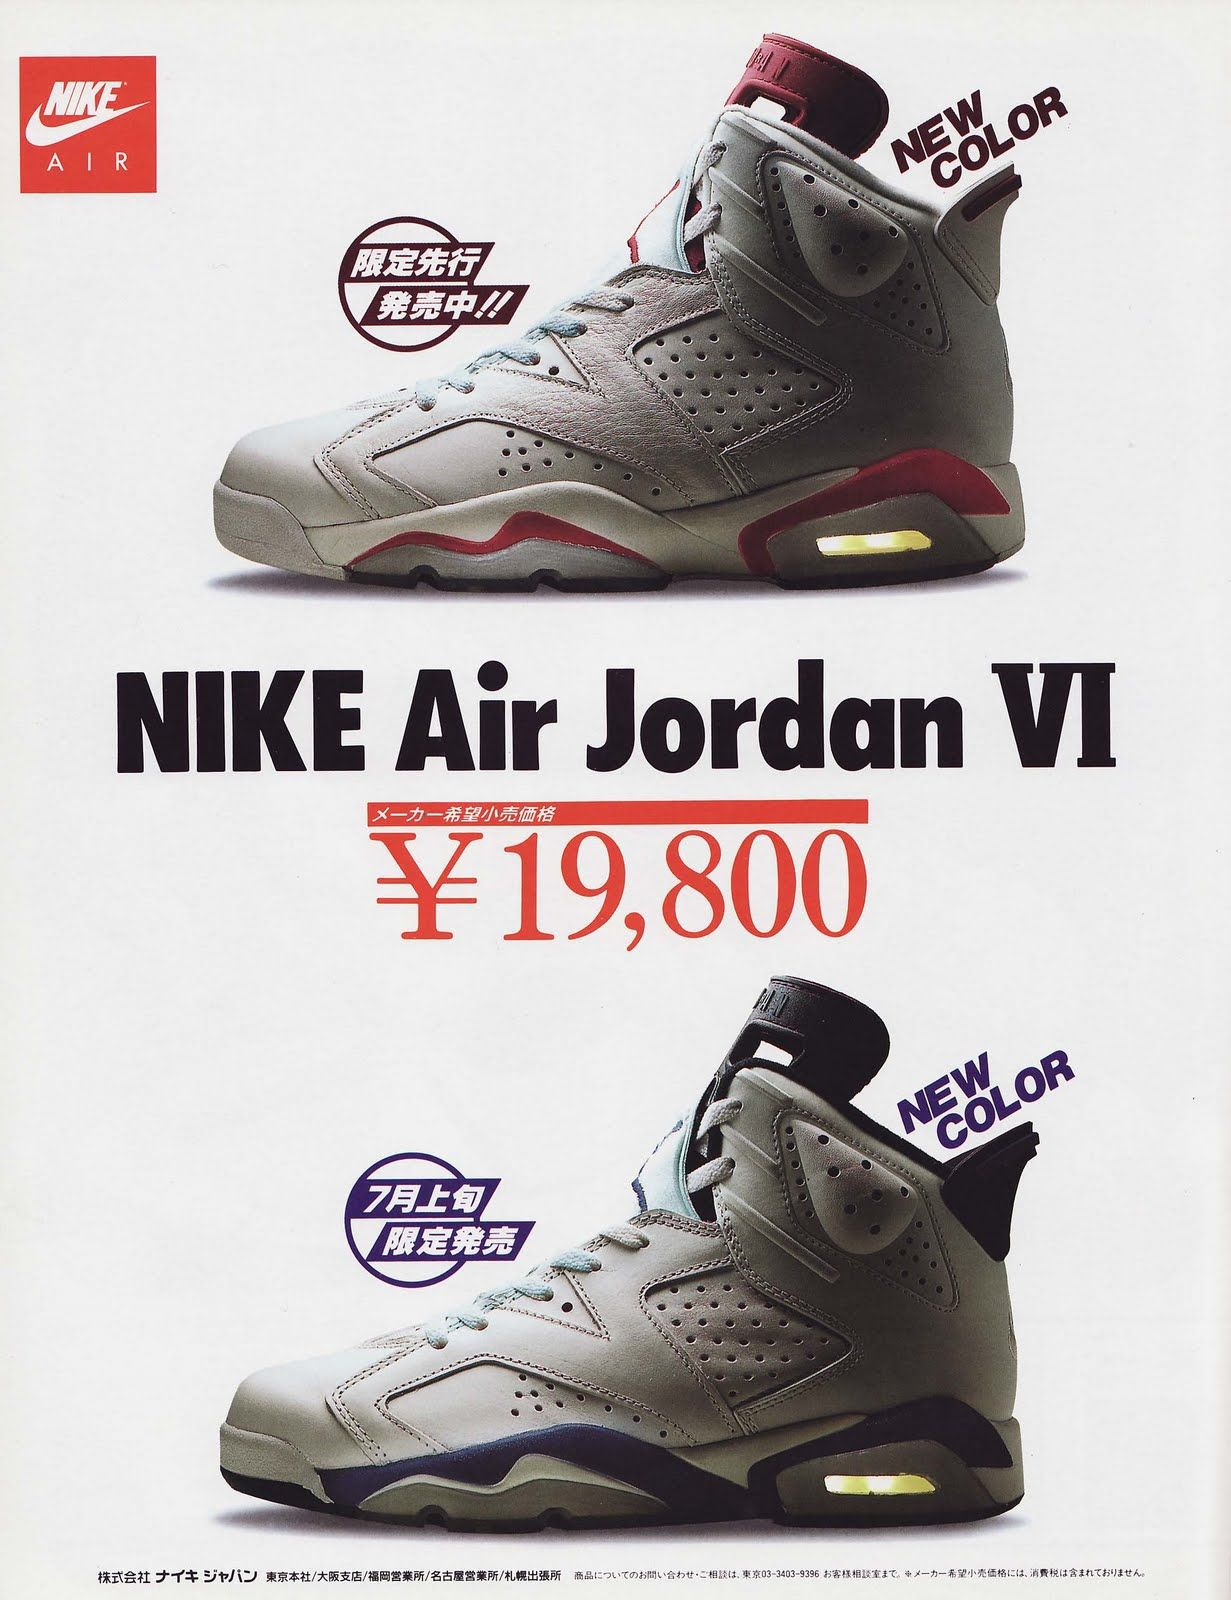 42d379039 late 90s jordan print ad - Google Search